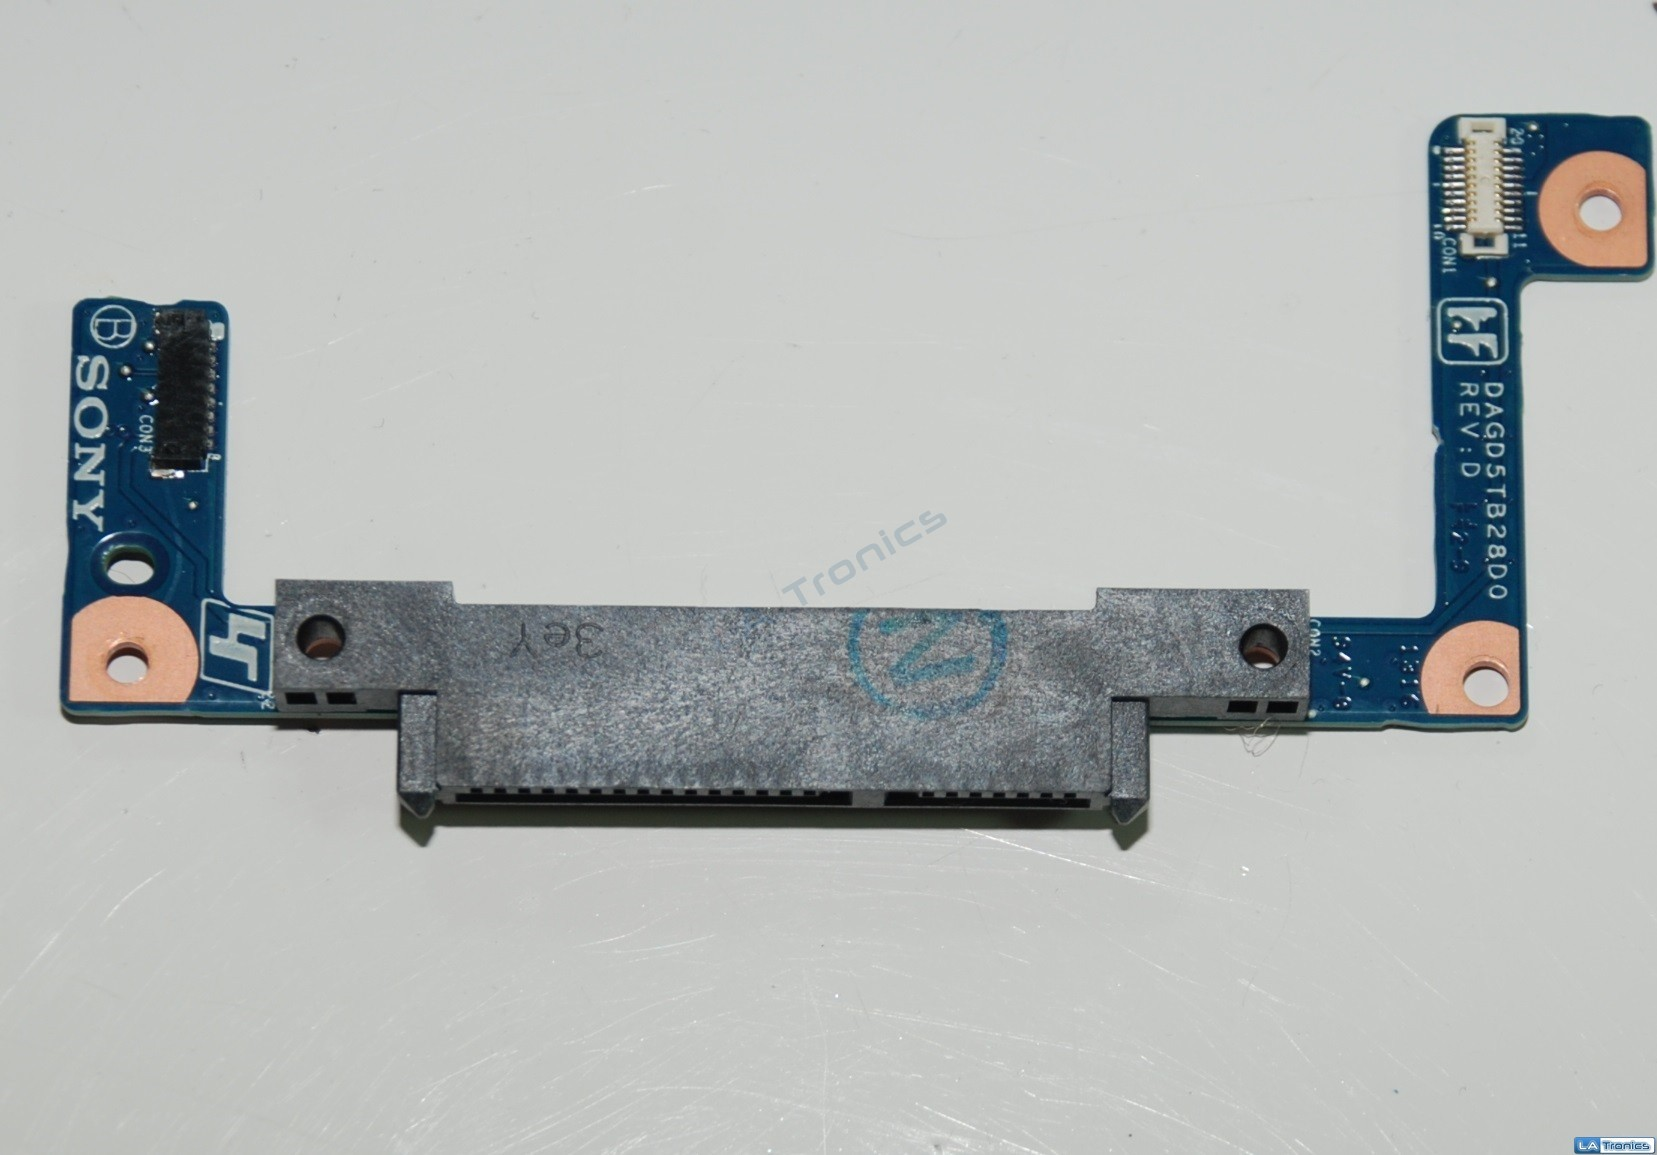 Sony Vaio SVF14 SVF15 Fit Series Hard Drive Connector DAGD5TB28D0 REV:D